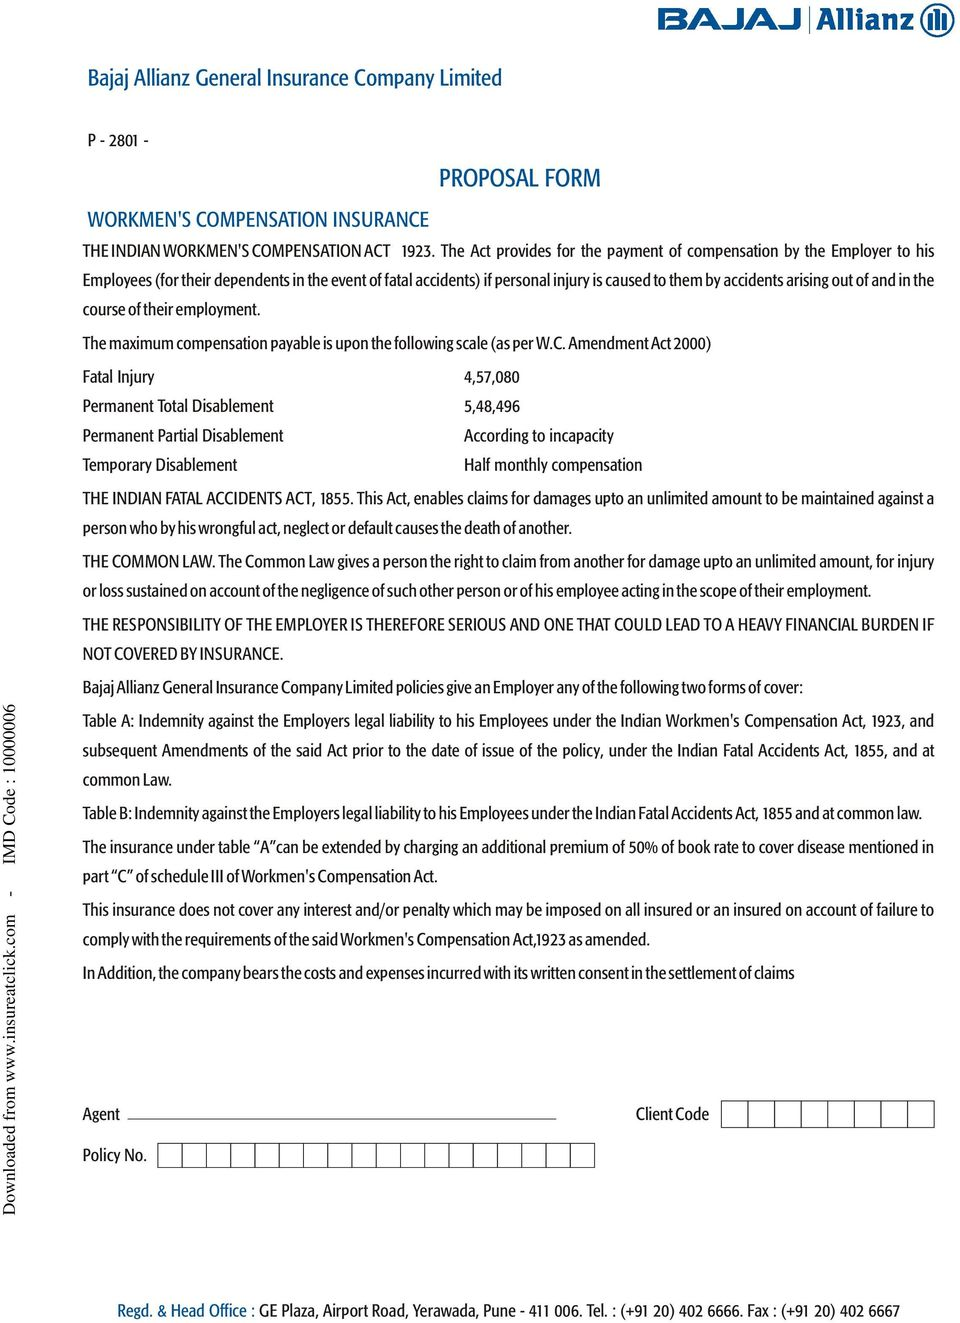 PROPOSAL FORM  Bajaj Allianz General Insurance Company Limited